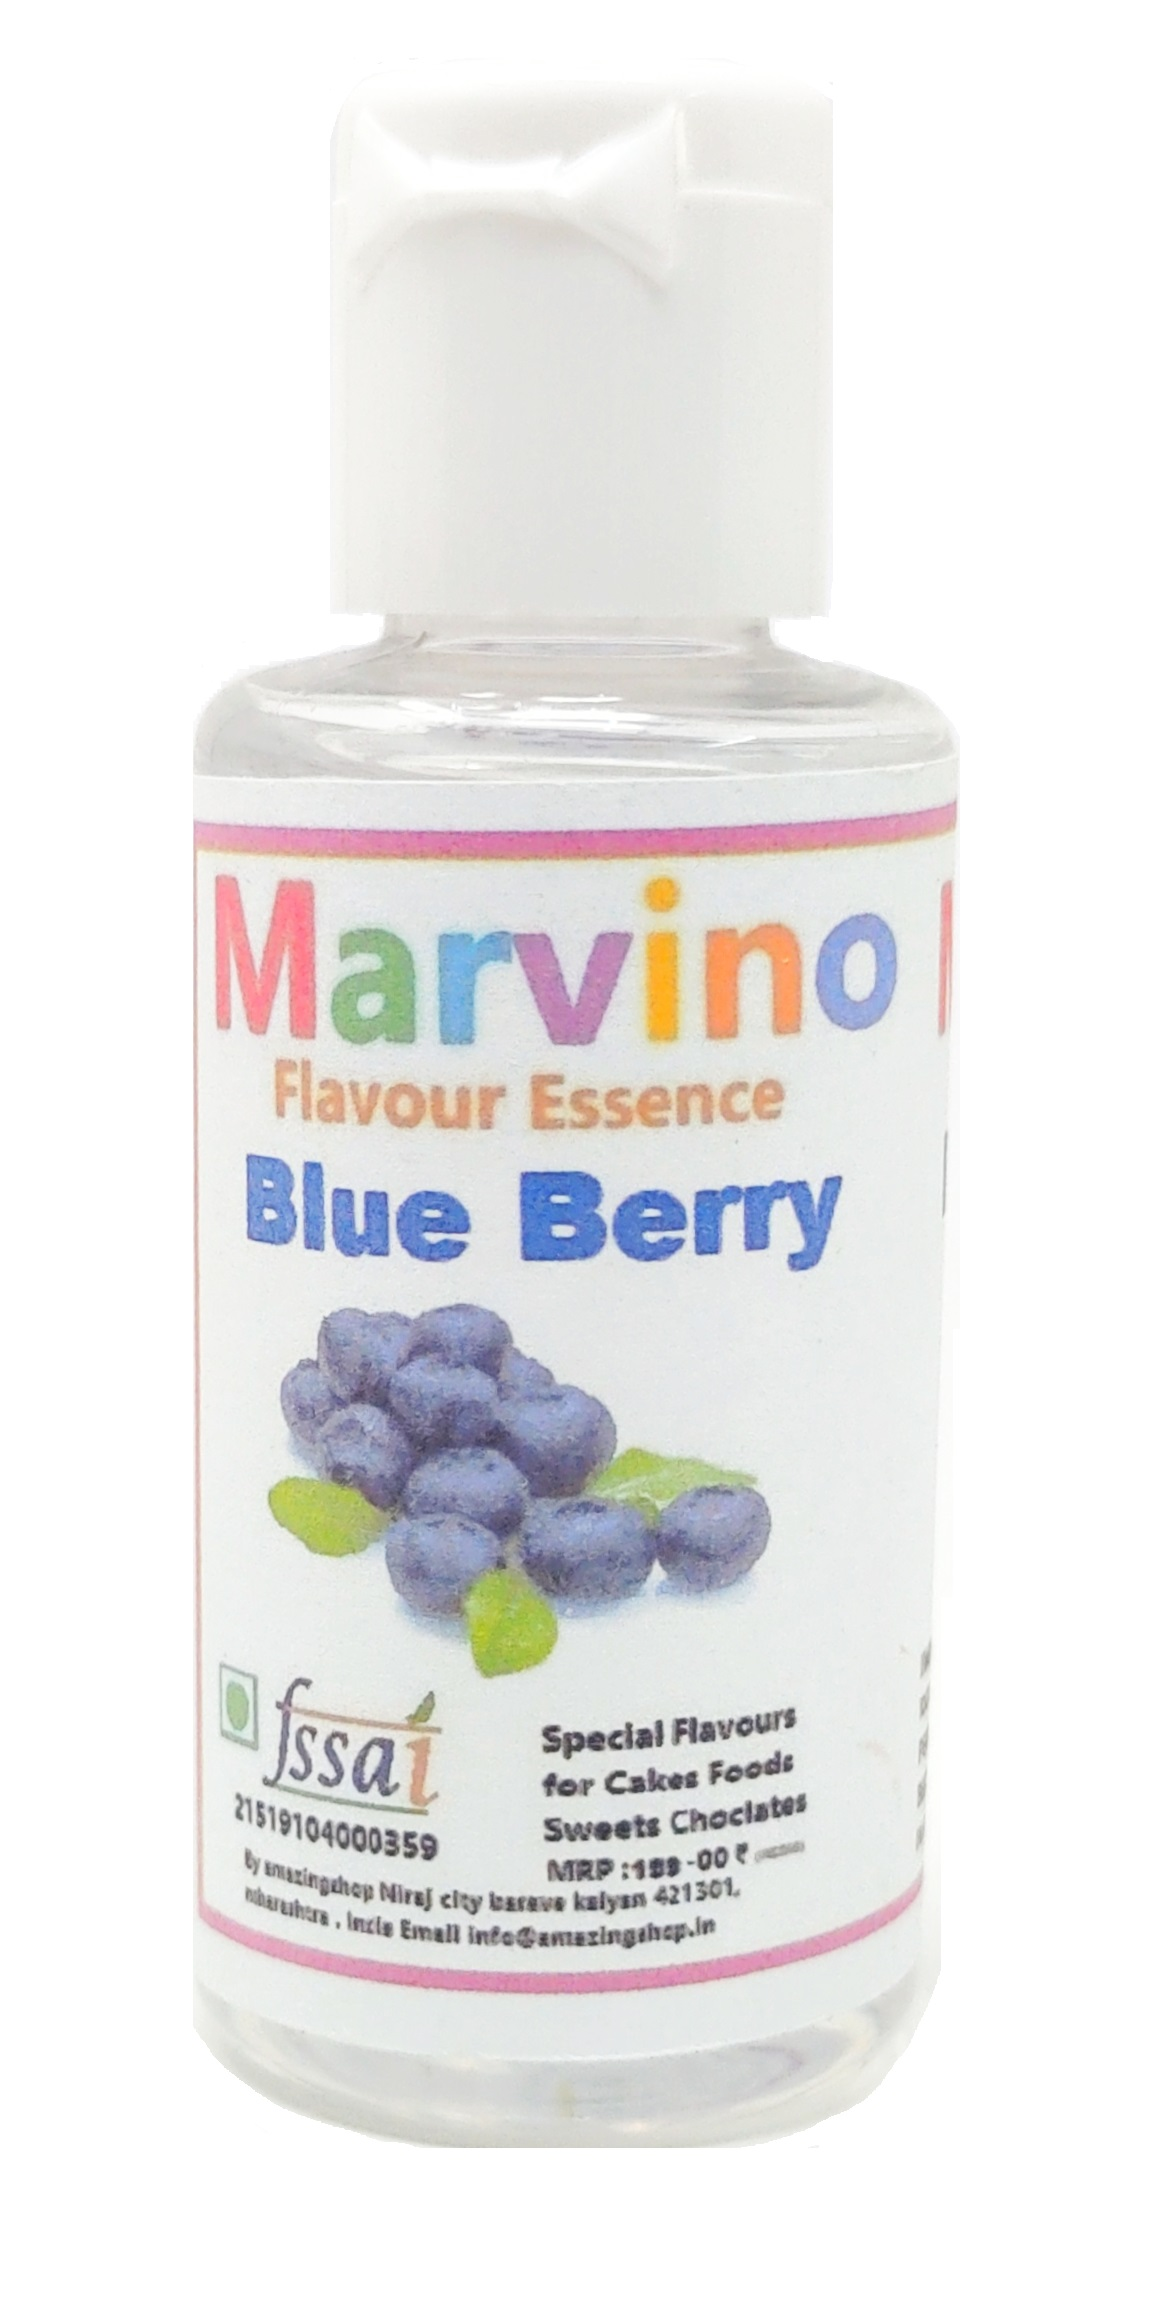 Marvino BlueBerry Flavour Essence Extracts For Cakes Whip-Creams Sweets Choclates And Icecreams